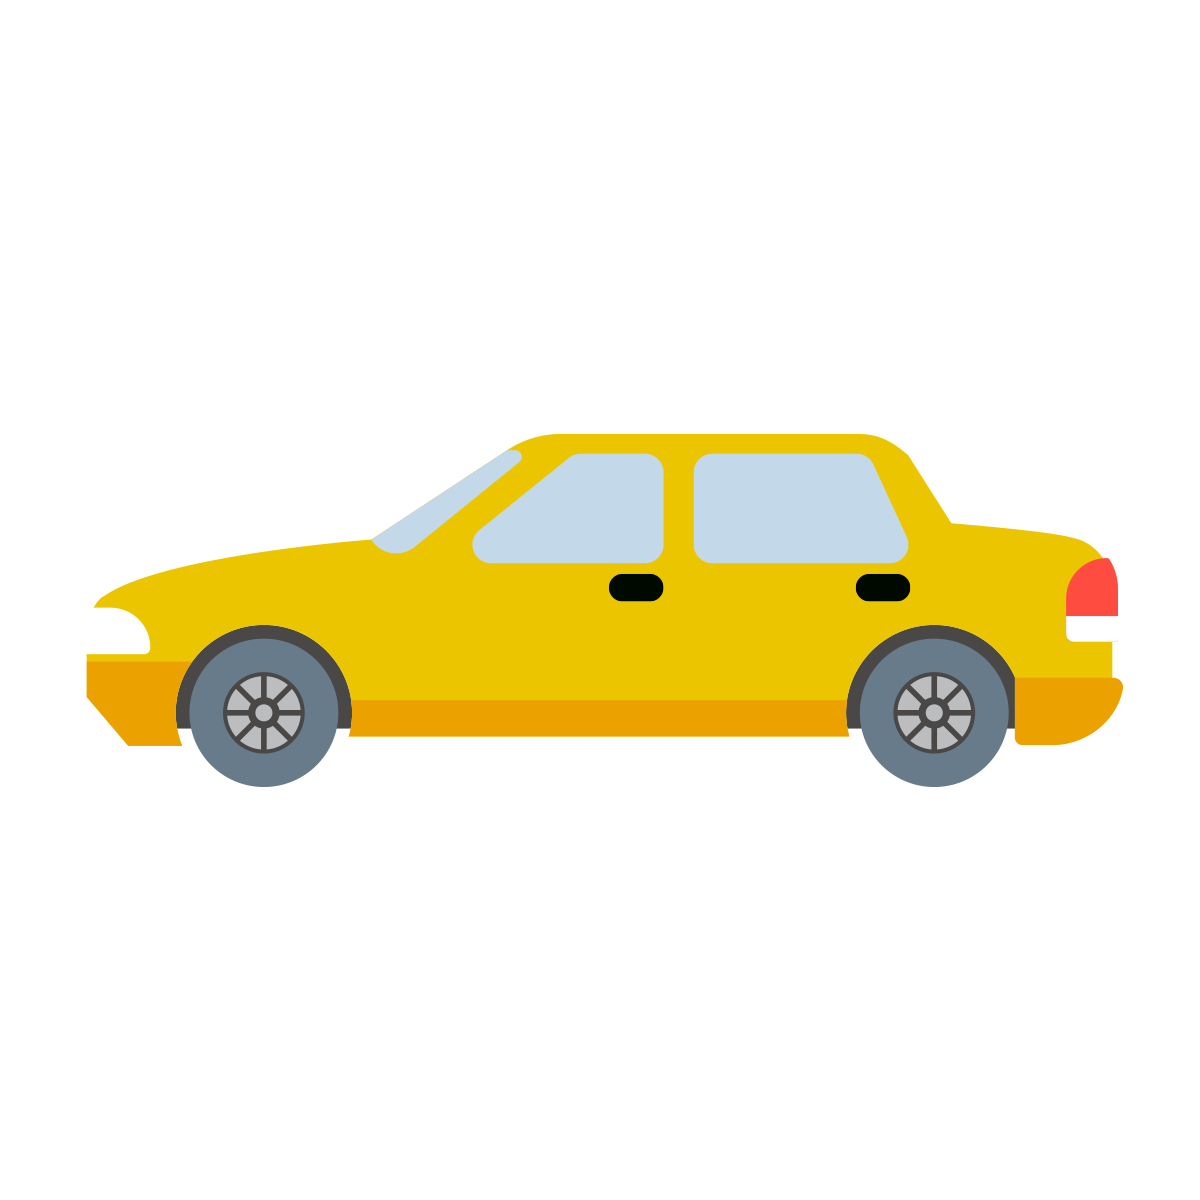 Free Download High Quality Cartoon Car Png Yellow Color Transparent Background Image It Is Good Quality Yellow Cartoon Car Pn Car Cartoon Background Images Car